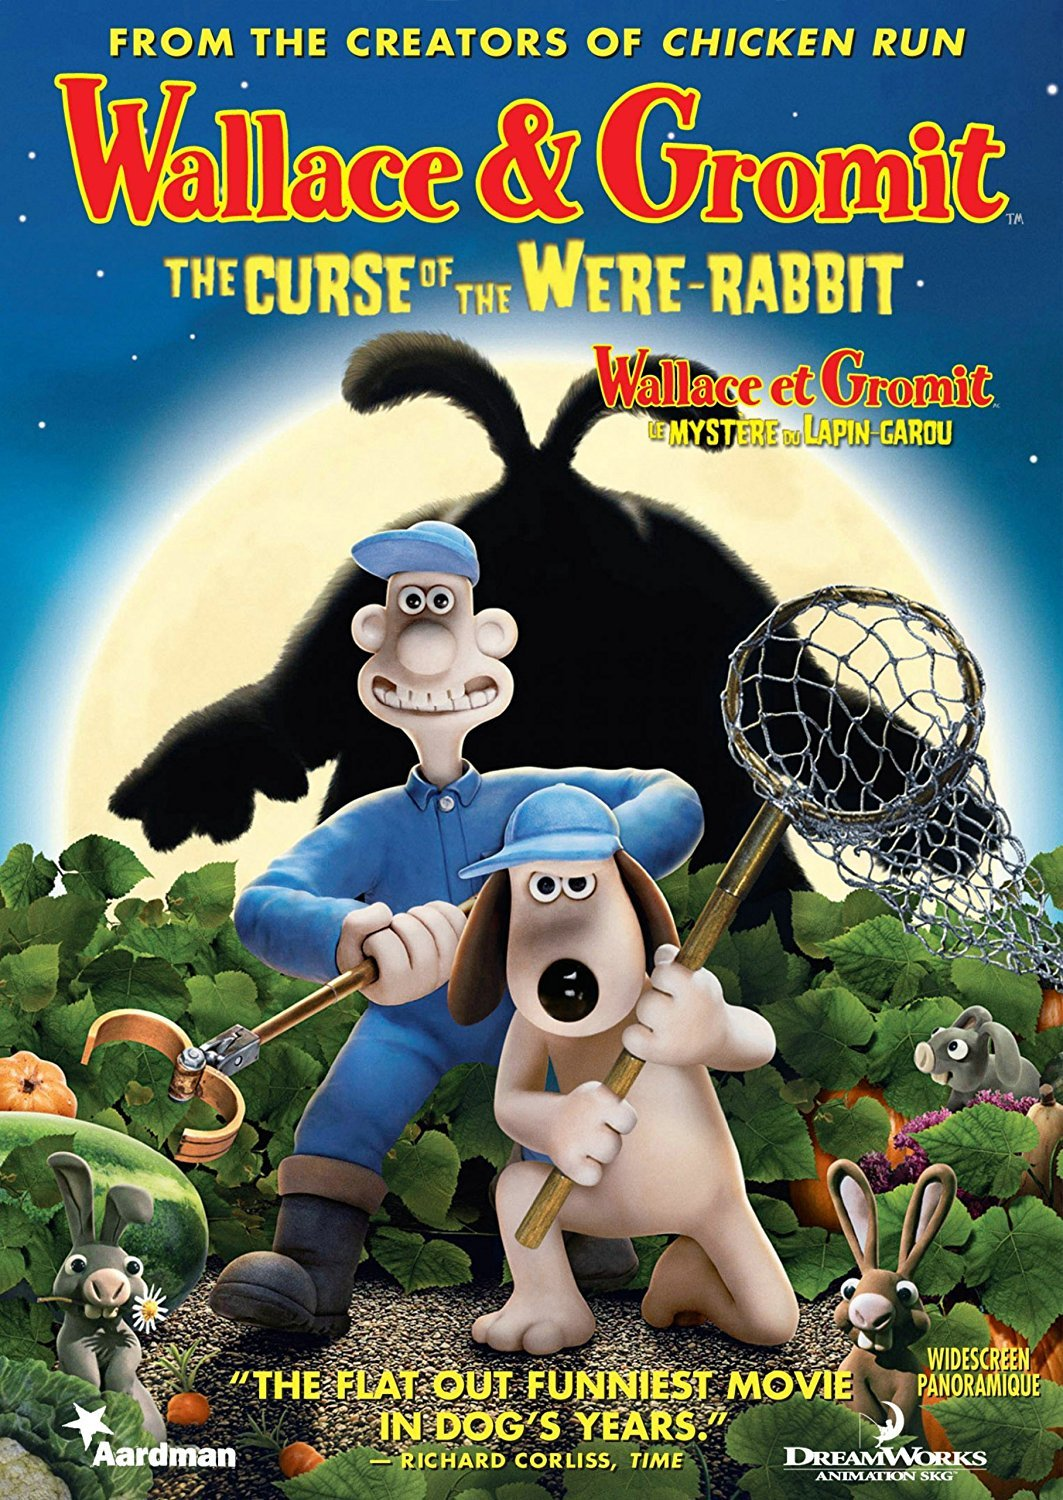 Wallace & Gromit: Classic Halloween Movies for families | The Dating Divas